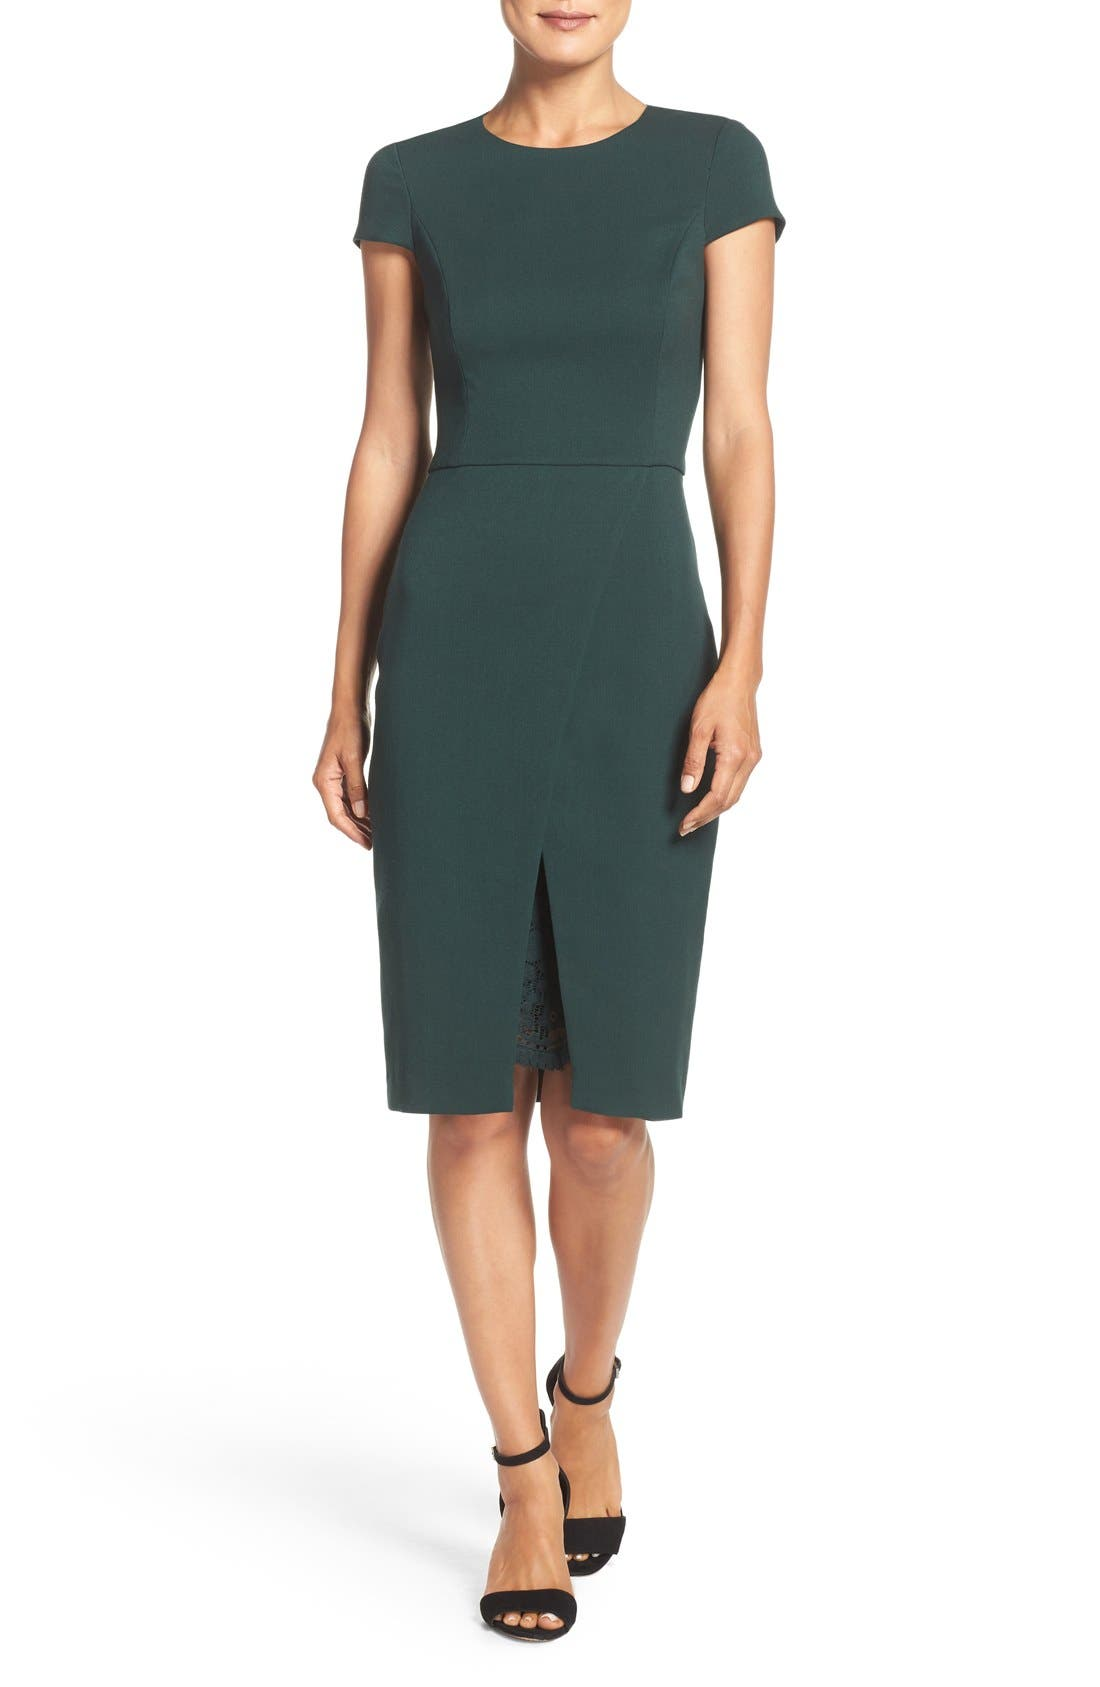 Alternate Image 1 Selected - Vince Camuto Midi Sheath Dress (Regular & Petite)